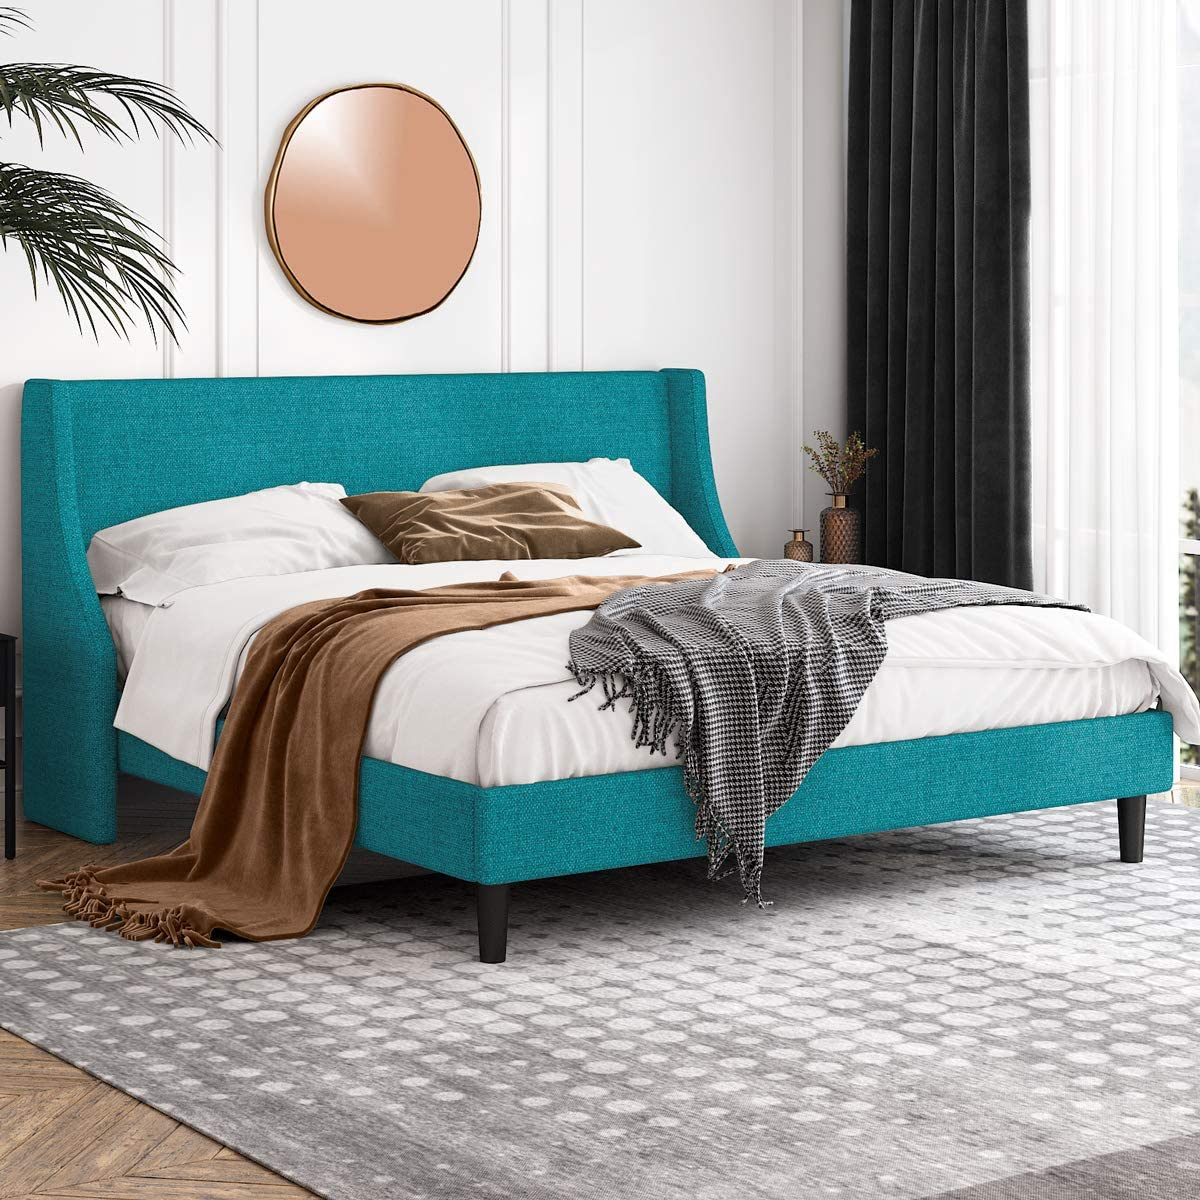 Einfach King Size Platform Excellence Bed with Wingback Headboard F Frame Selling and selling